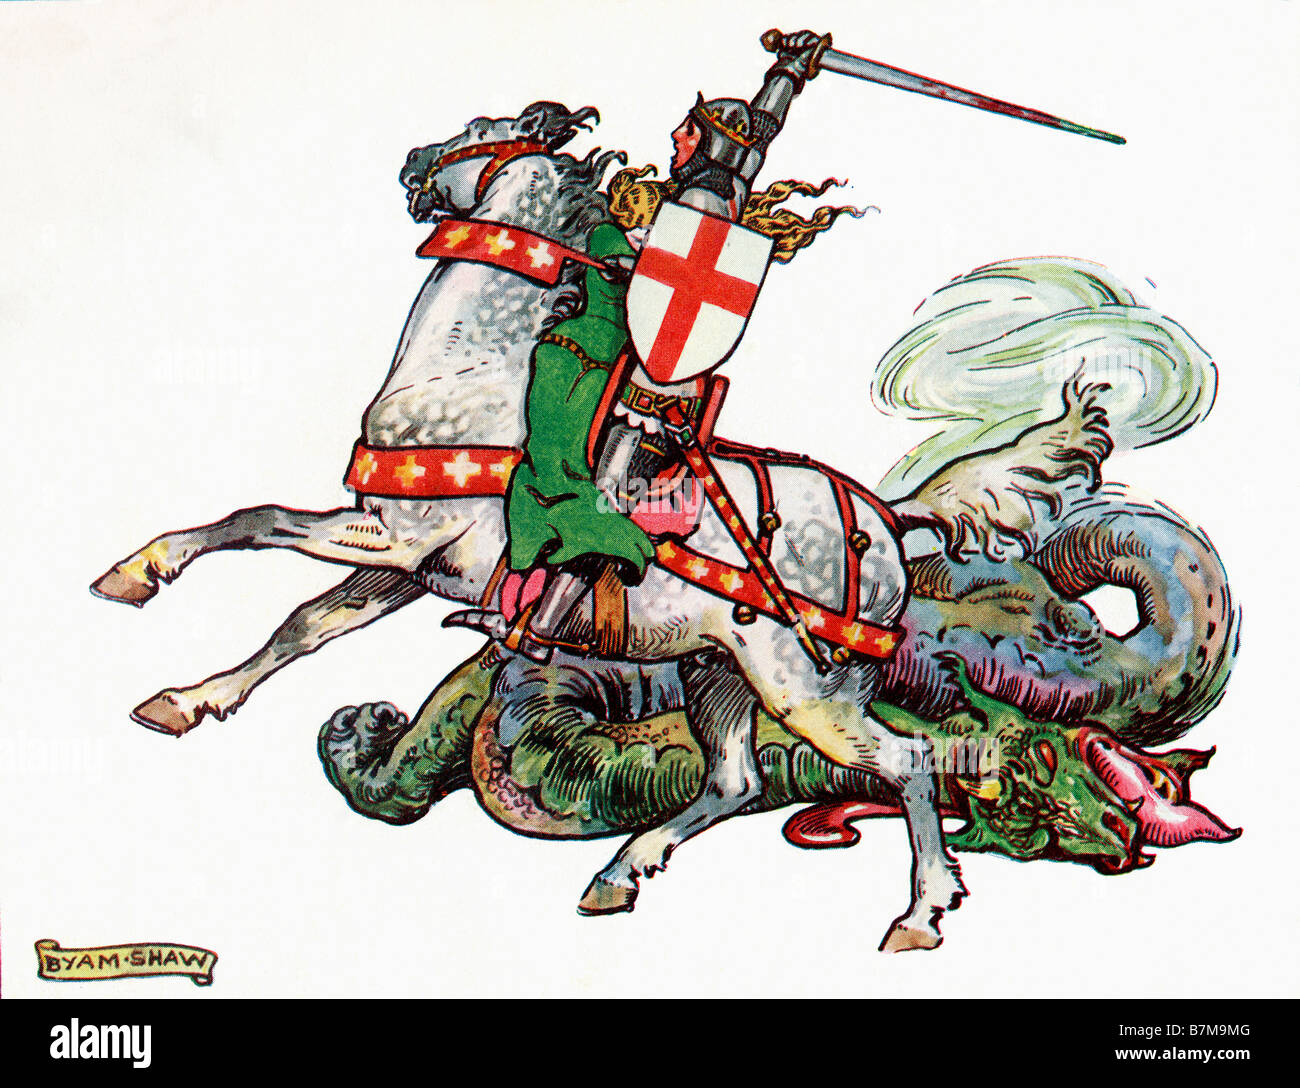 St George and the Dragon Illustration from the book Princess Marie José s Children s Book published 1916 - Stock Image